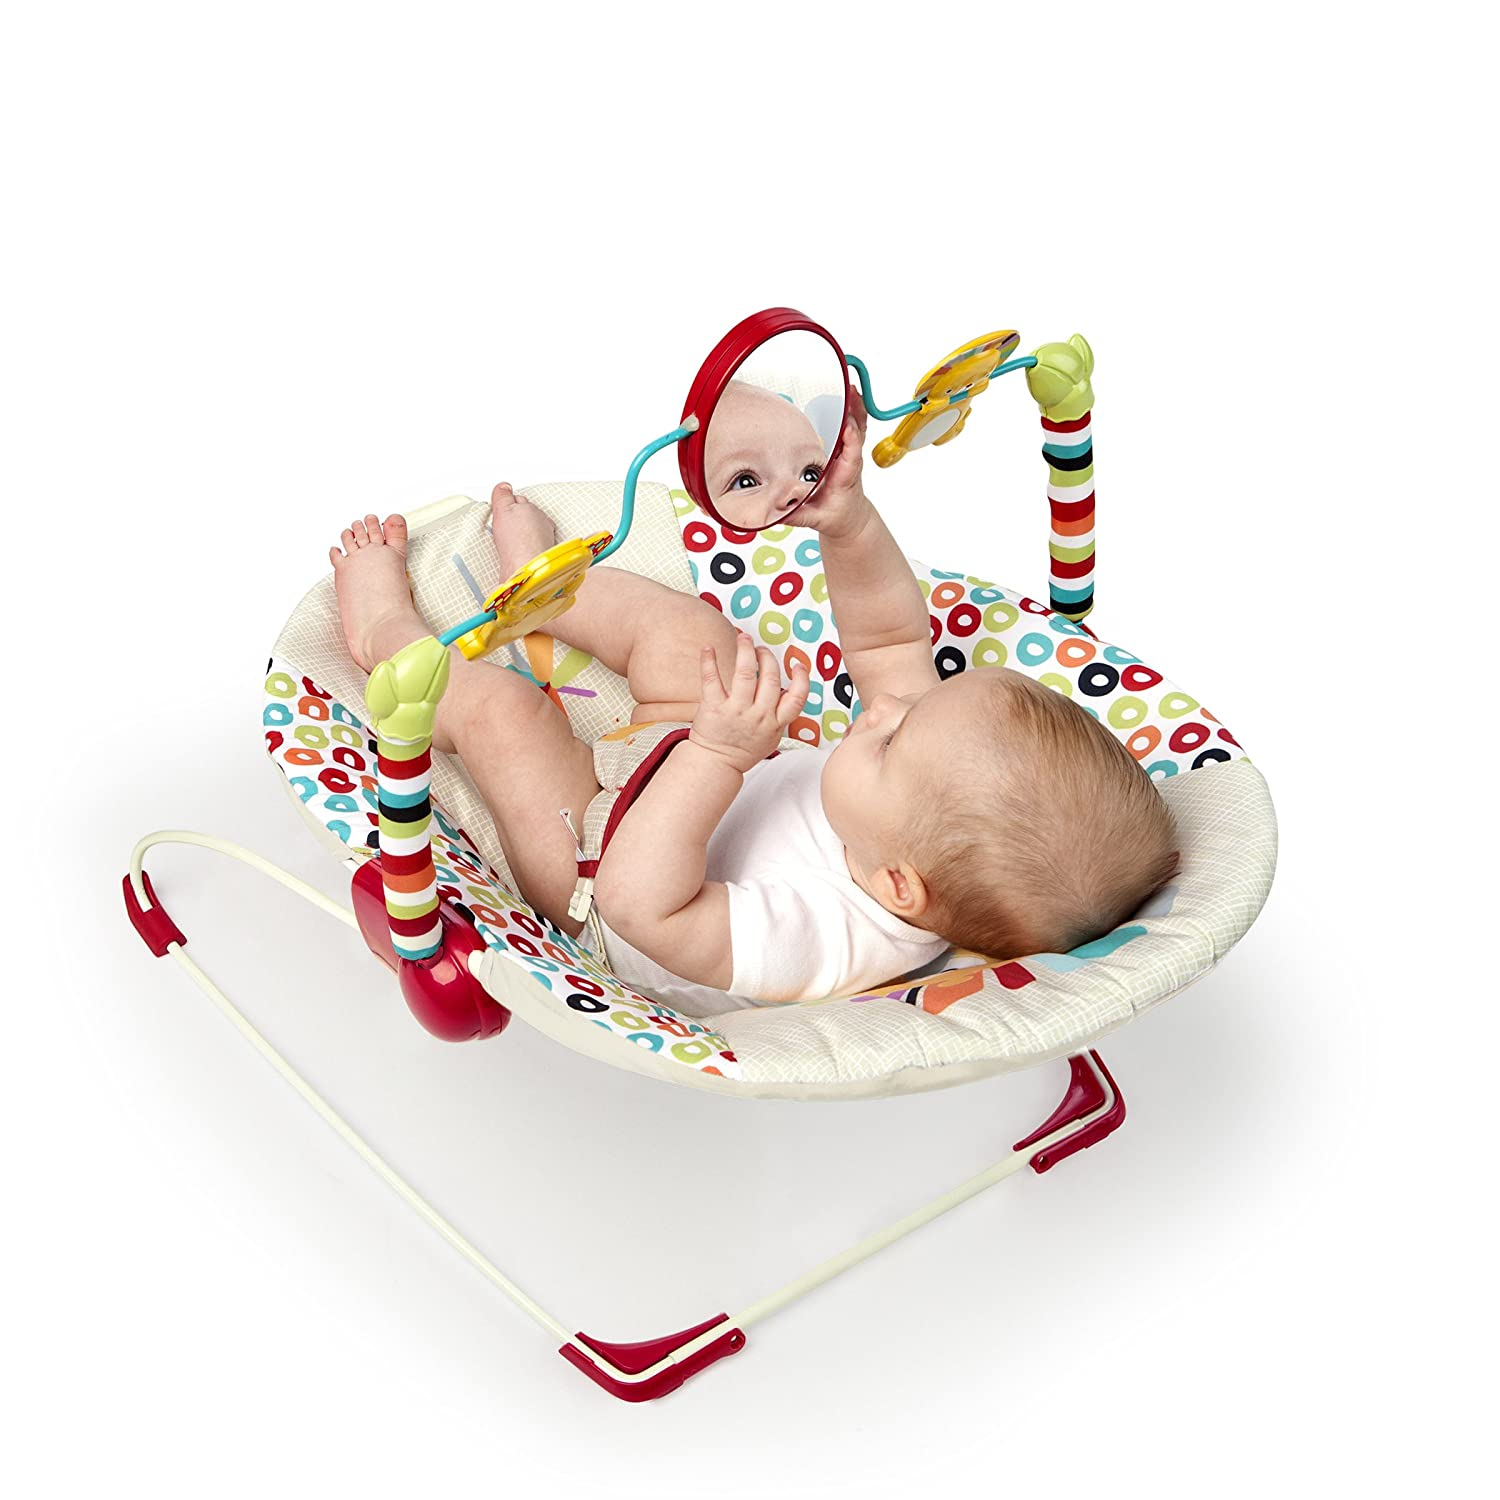 Baby Bouncer Chair Seat Soothing Vibration Interactive